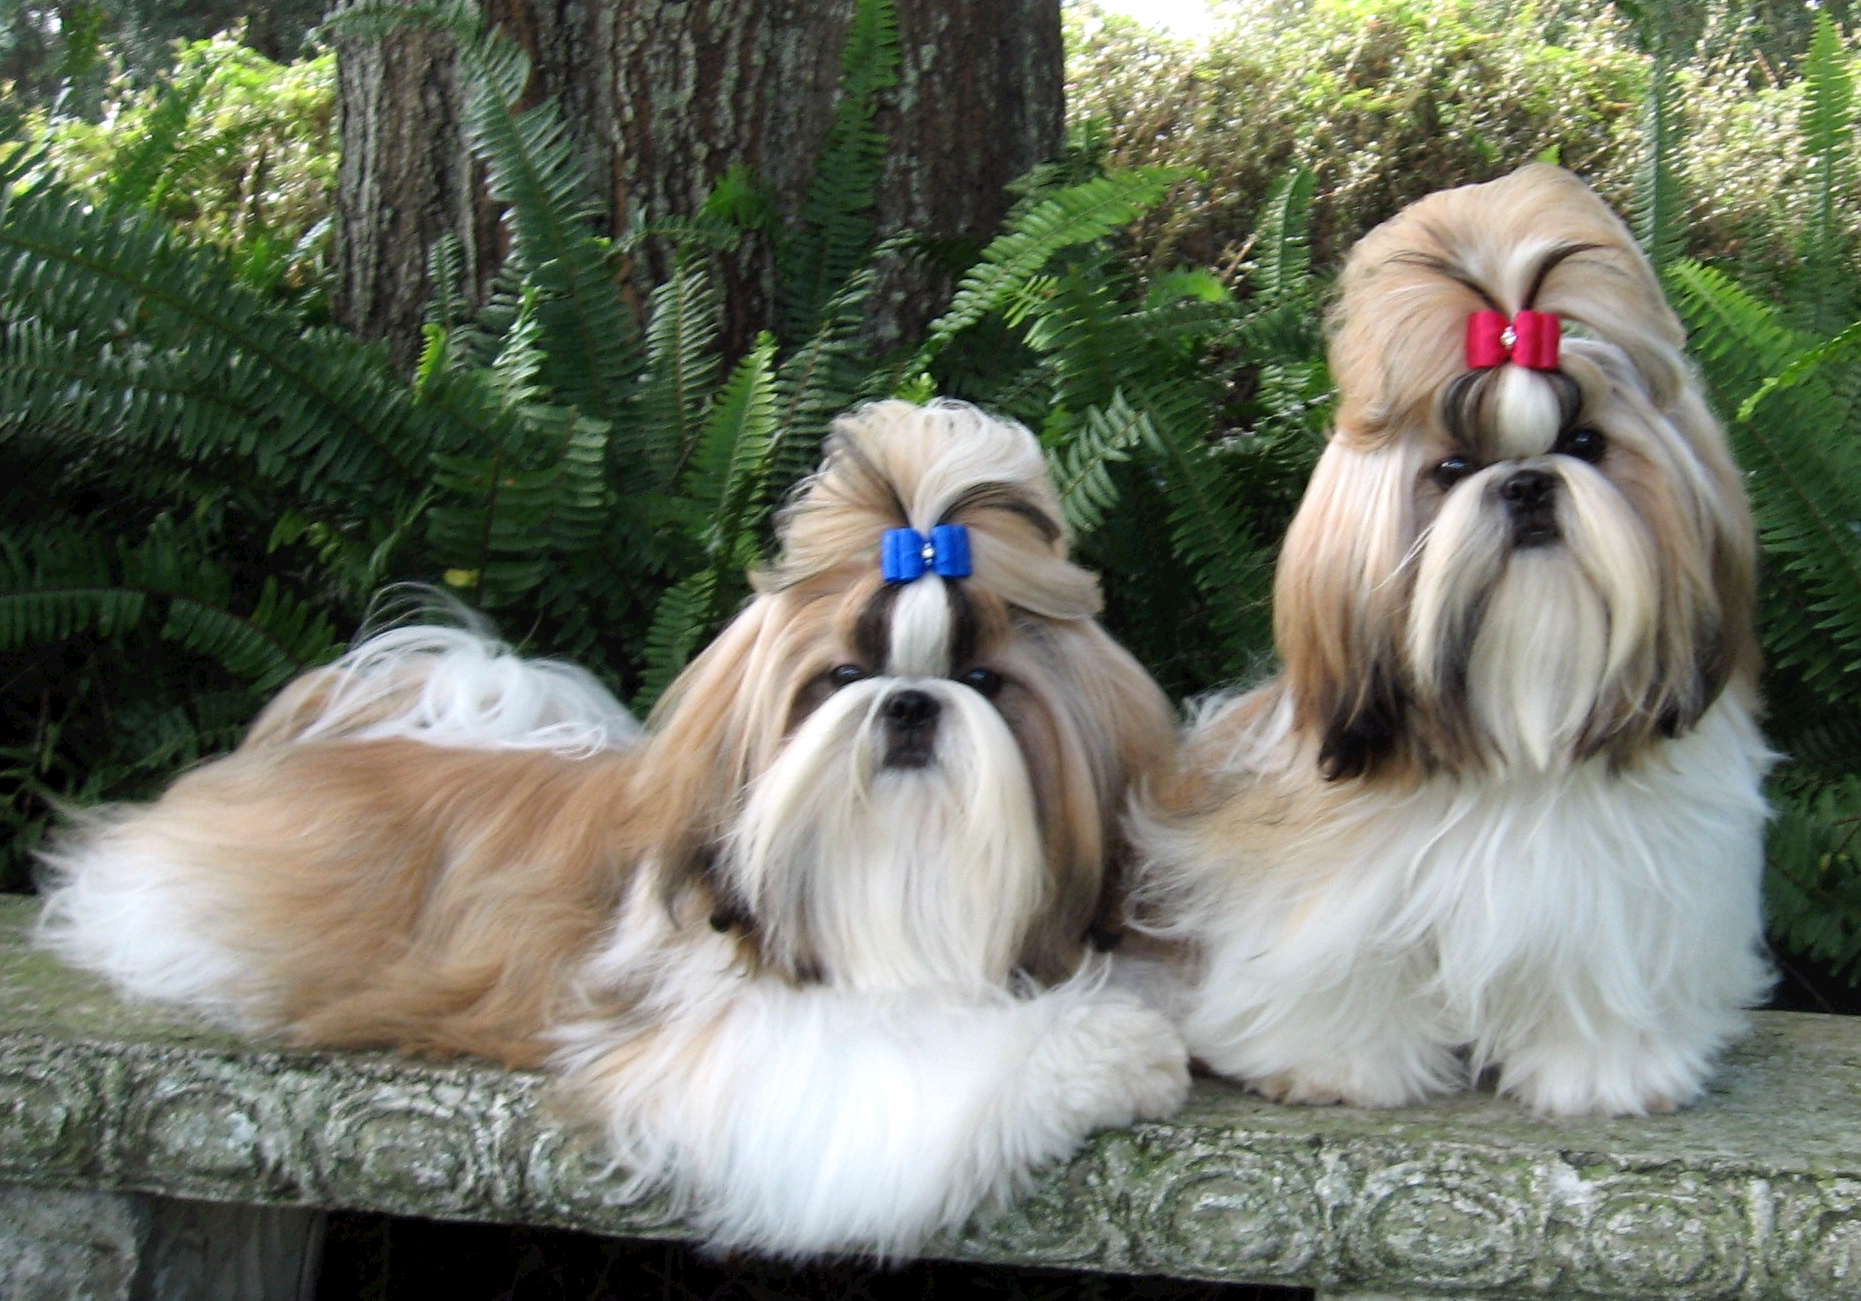 Add photos Cute Shih Tzu dogs in your blog: